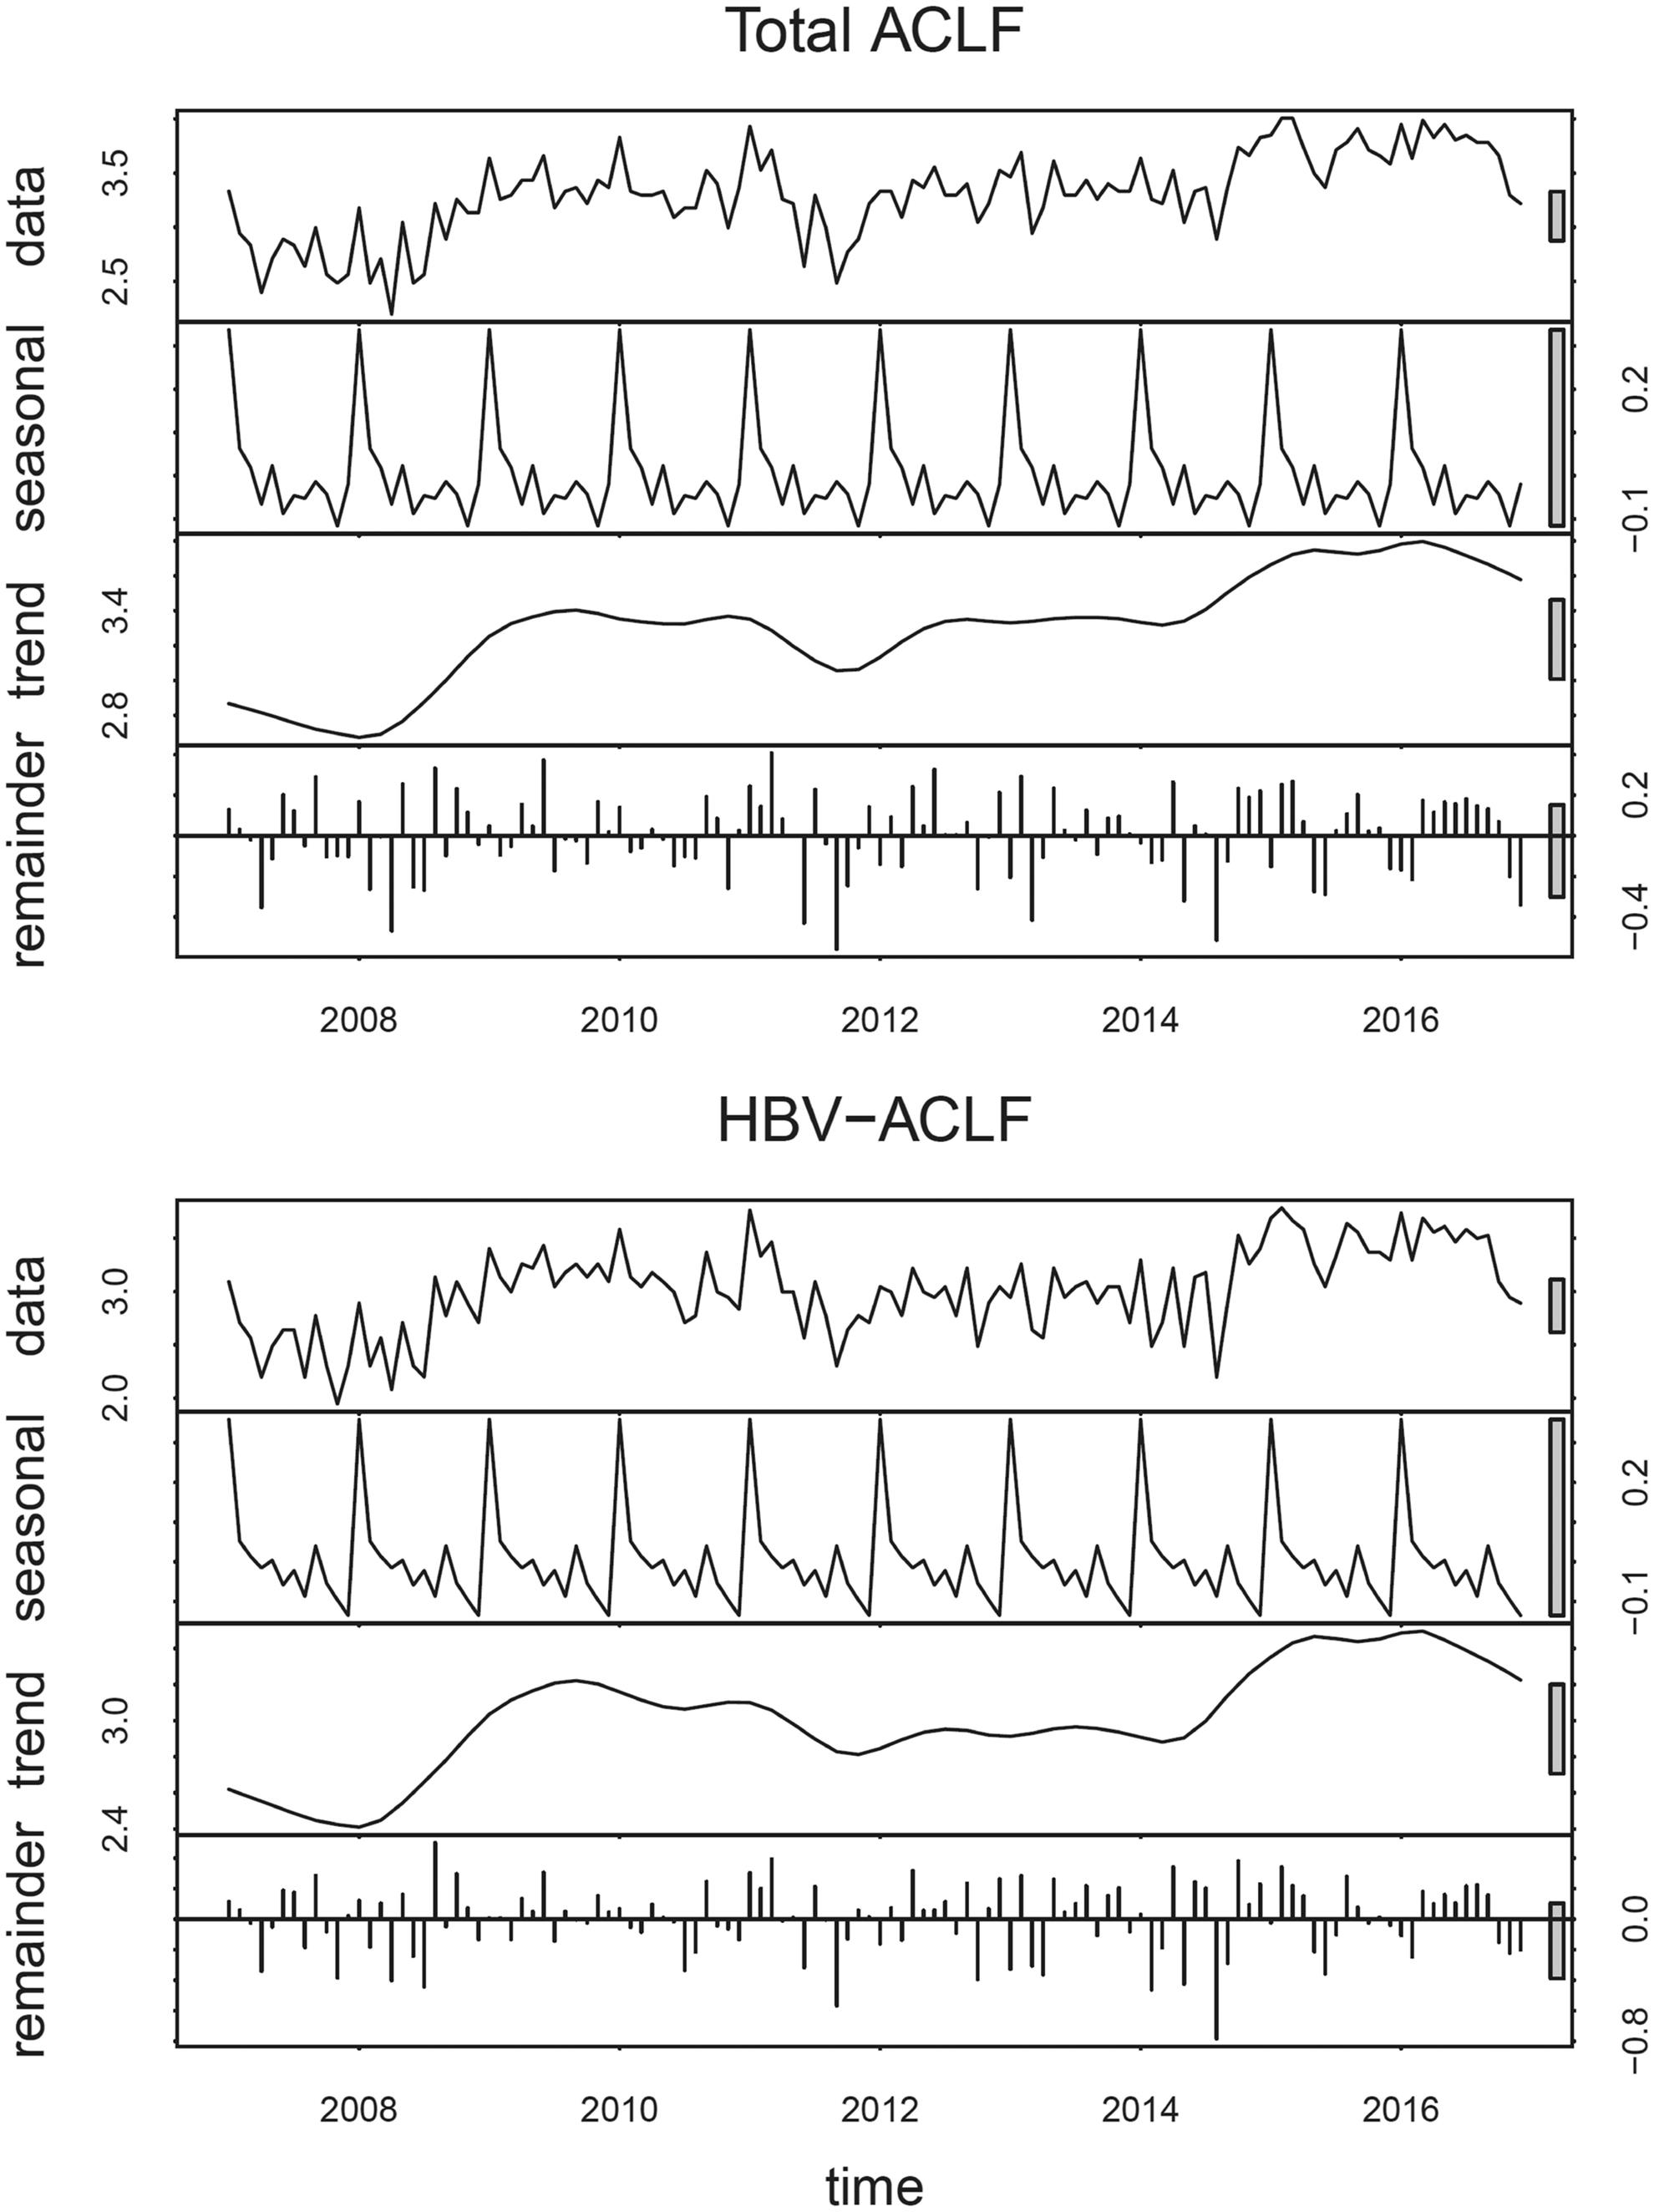 The seasonal variations of ACLF over 10 years.